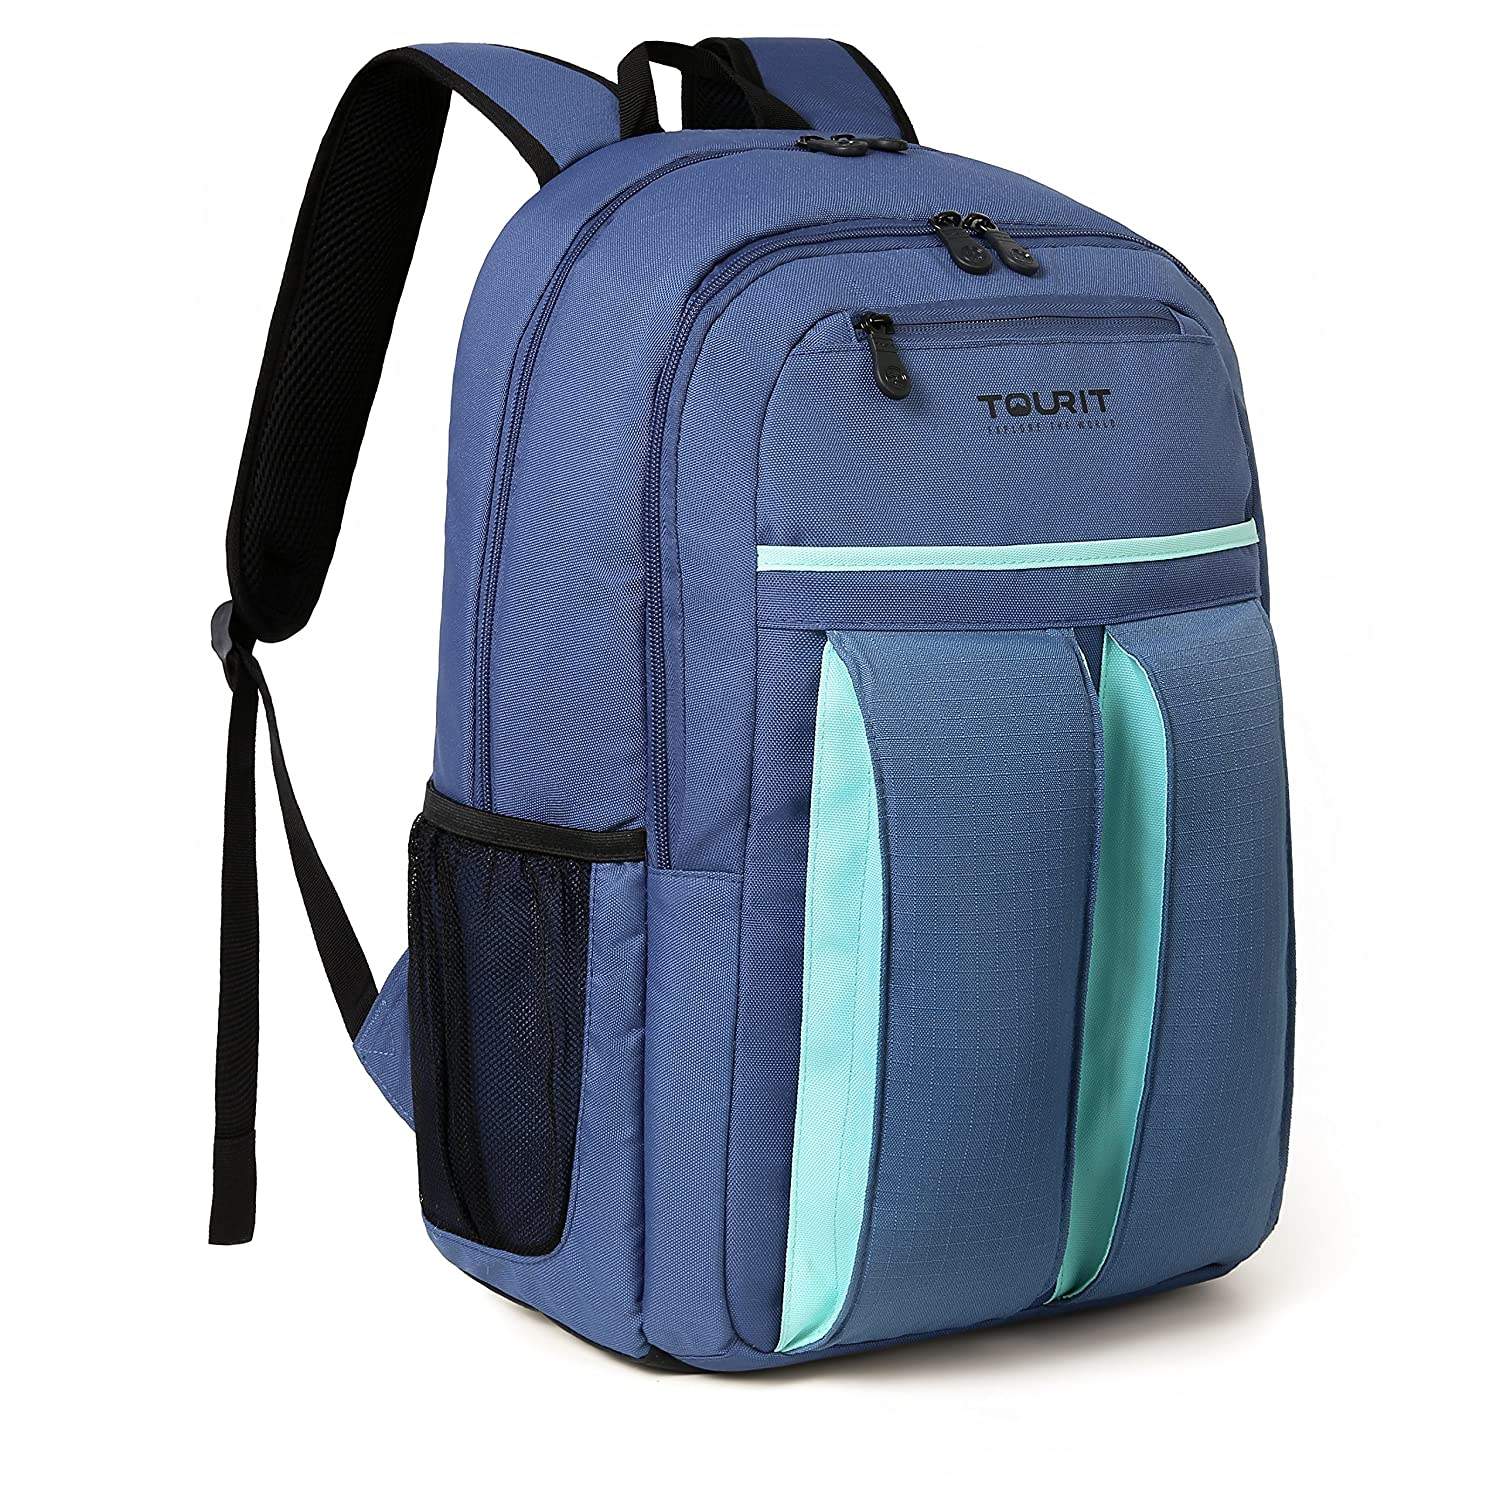 Fishing Camping TOURIT Cooler Backpack 32 Cans Large Capacity Insulated Backpack Cooler Bag for Men Women to Picnic Hiking